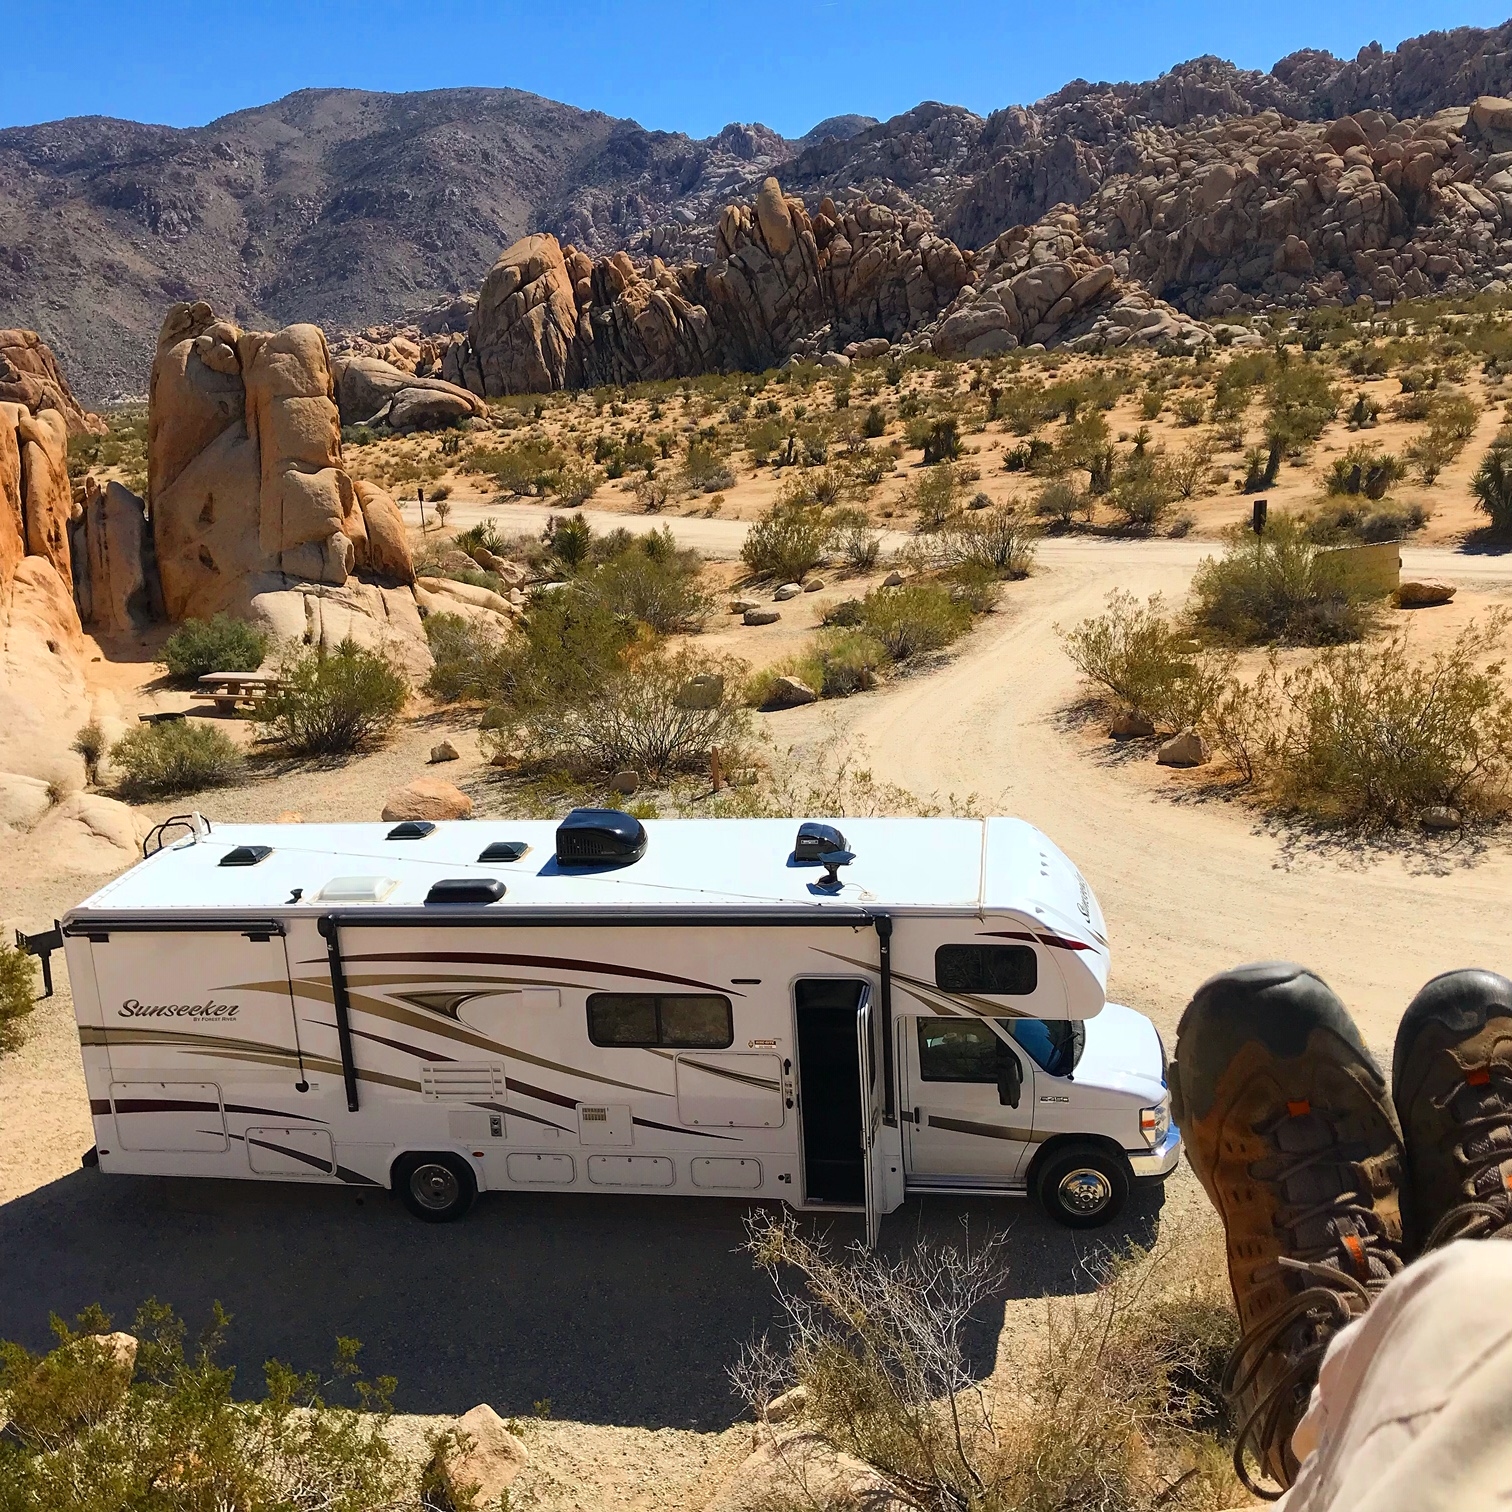 Our beautiful RV in Joshua Tree. Forest River Sunseeker 2018